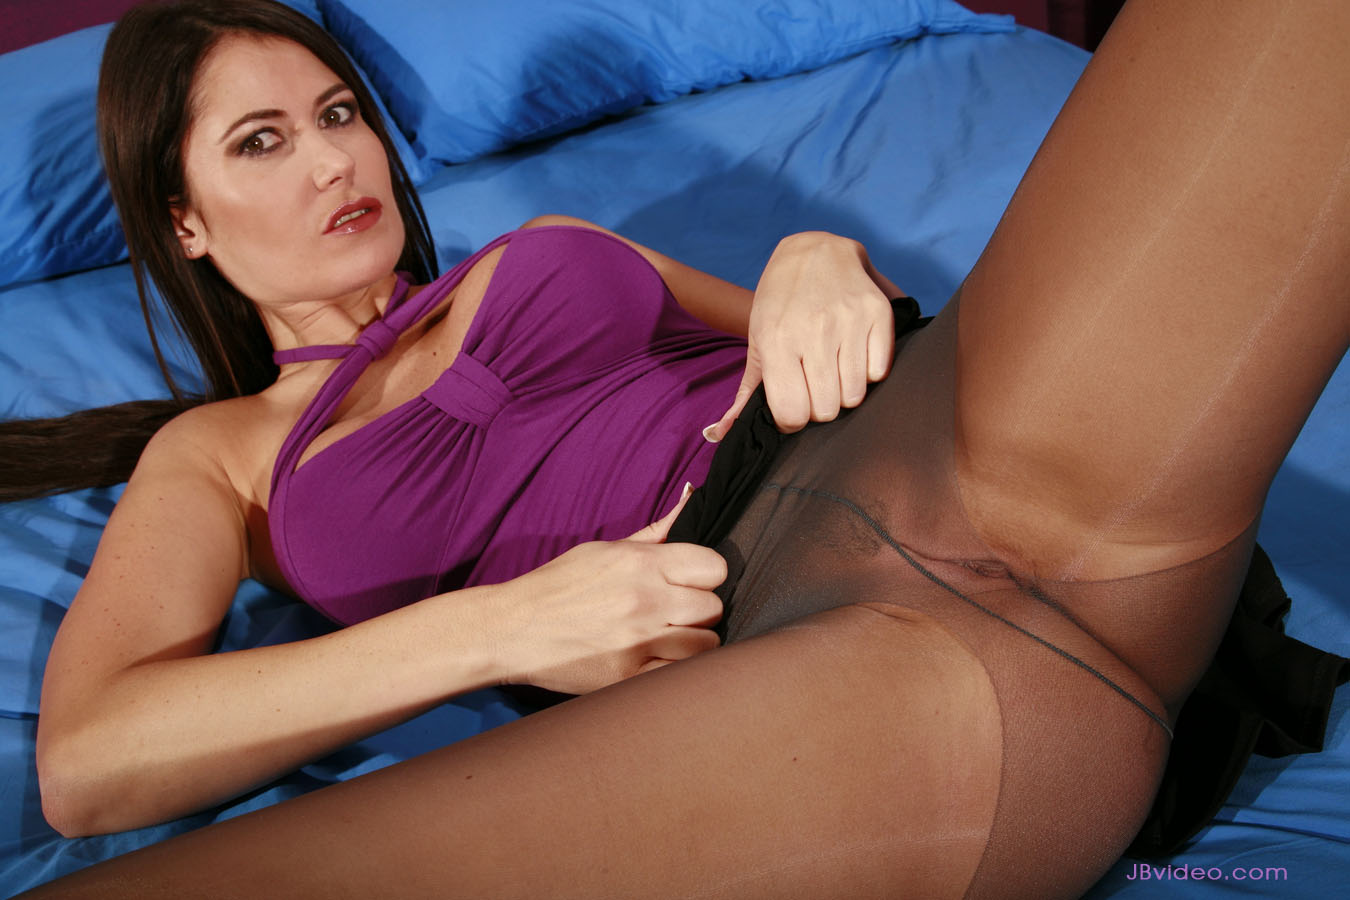 jb video pov pantyhose sex i